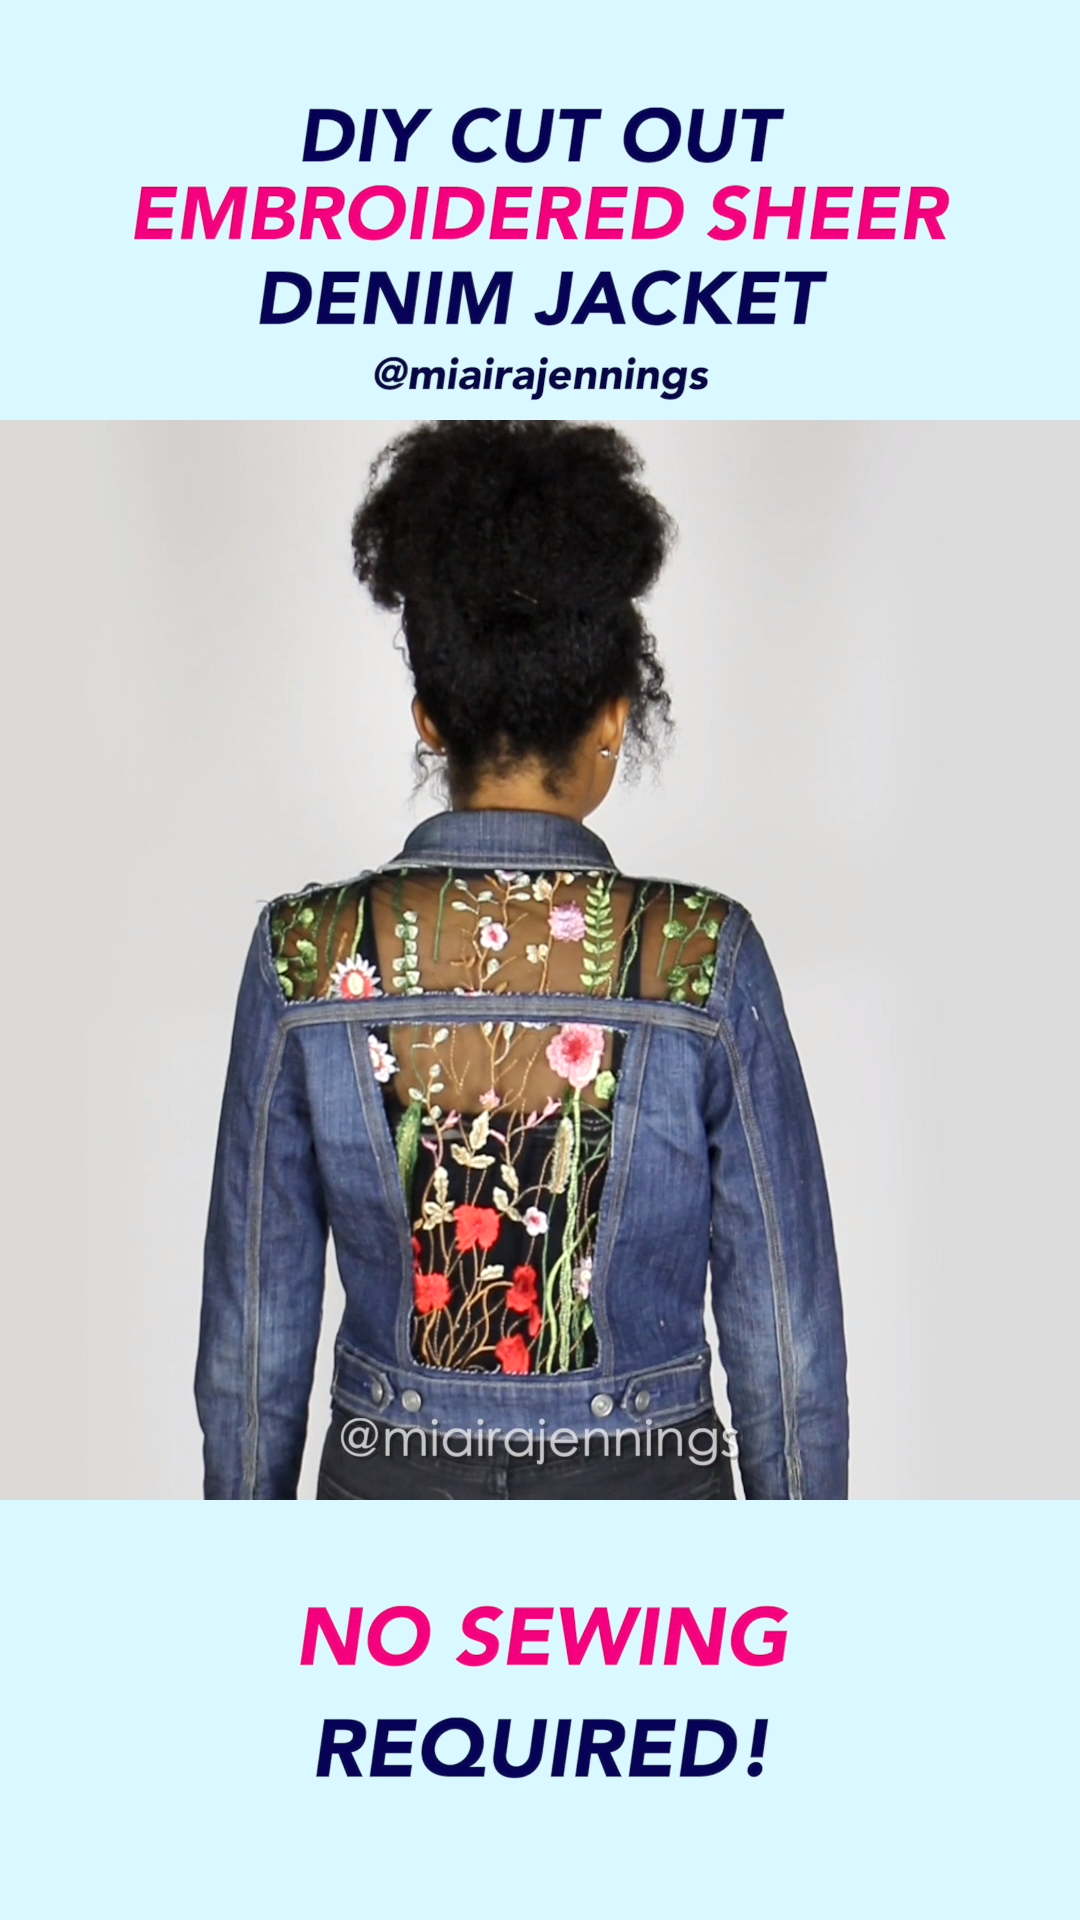 DIY Embroidered Sheer Cut Out Denim Jacket (NO SEW